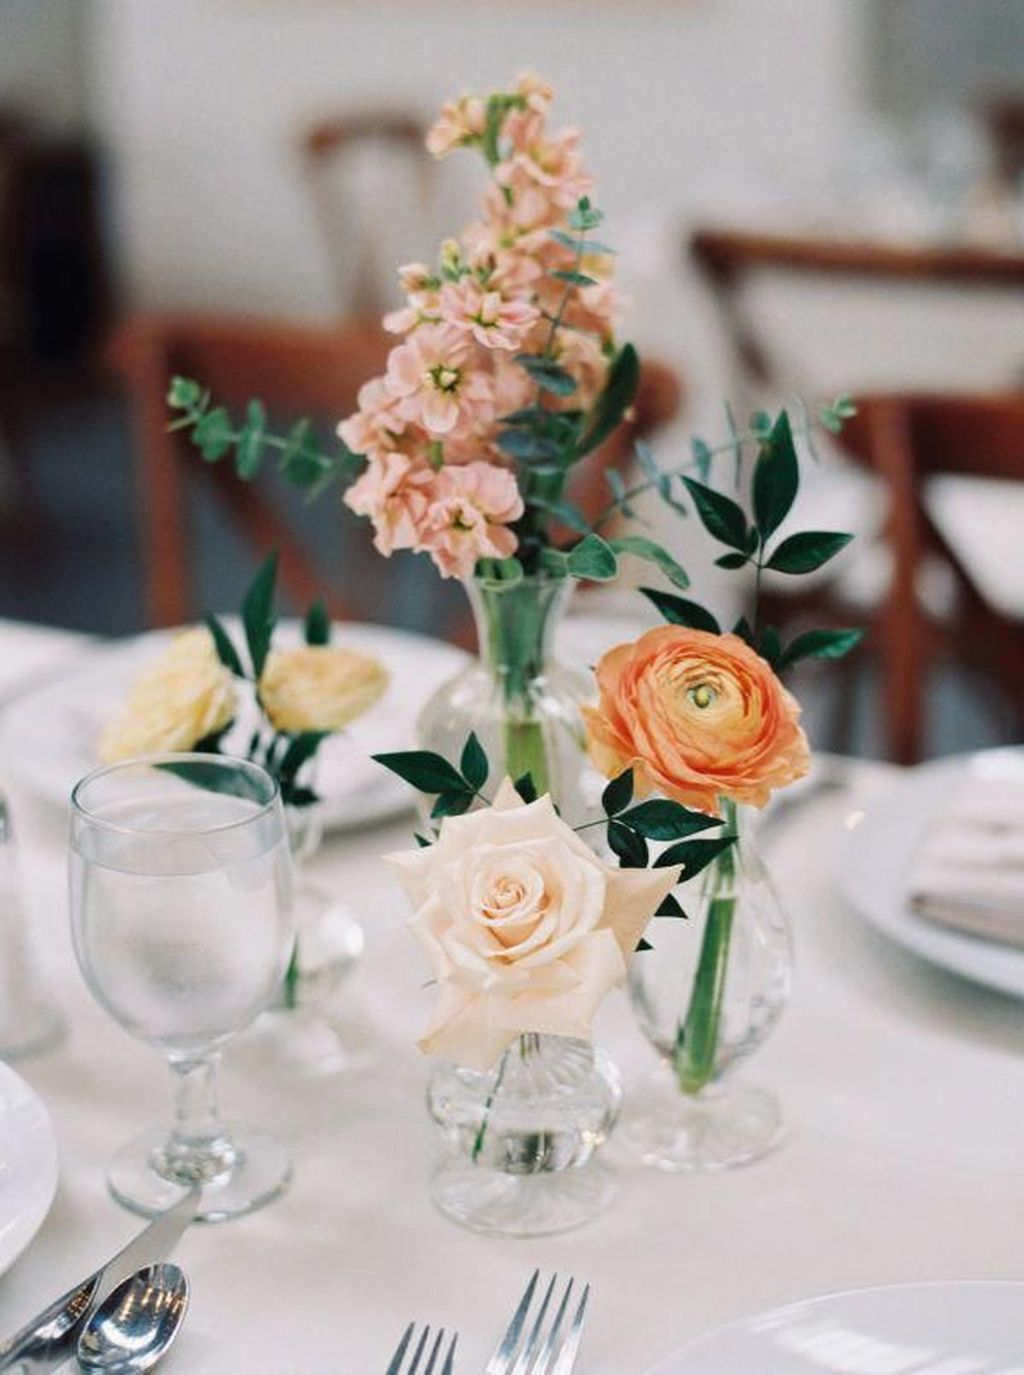 Lovely Bud Vase Centerpiece Decor Ideas For Your Dining Table 08